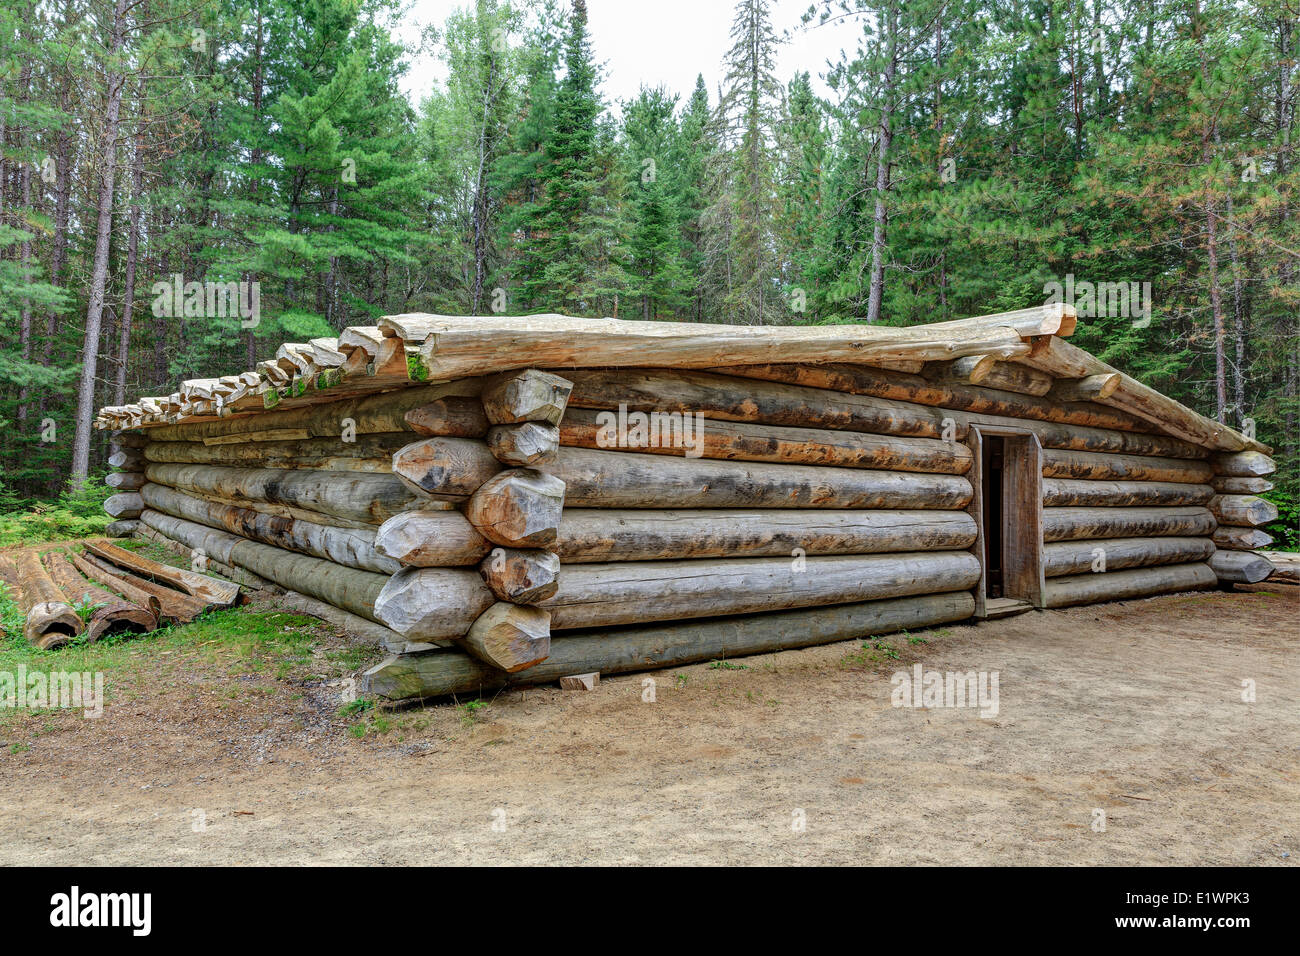 Log Cabin for logging camp workers historically known as a 'camboose shanty' Algonquin Logging Museum Algonquin - Stock Image